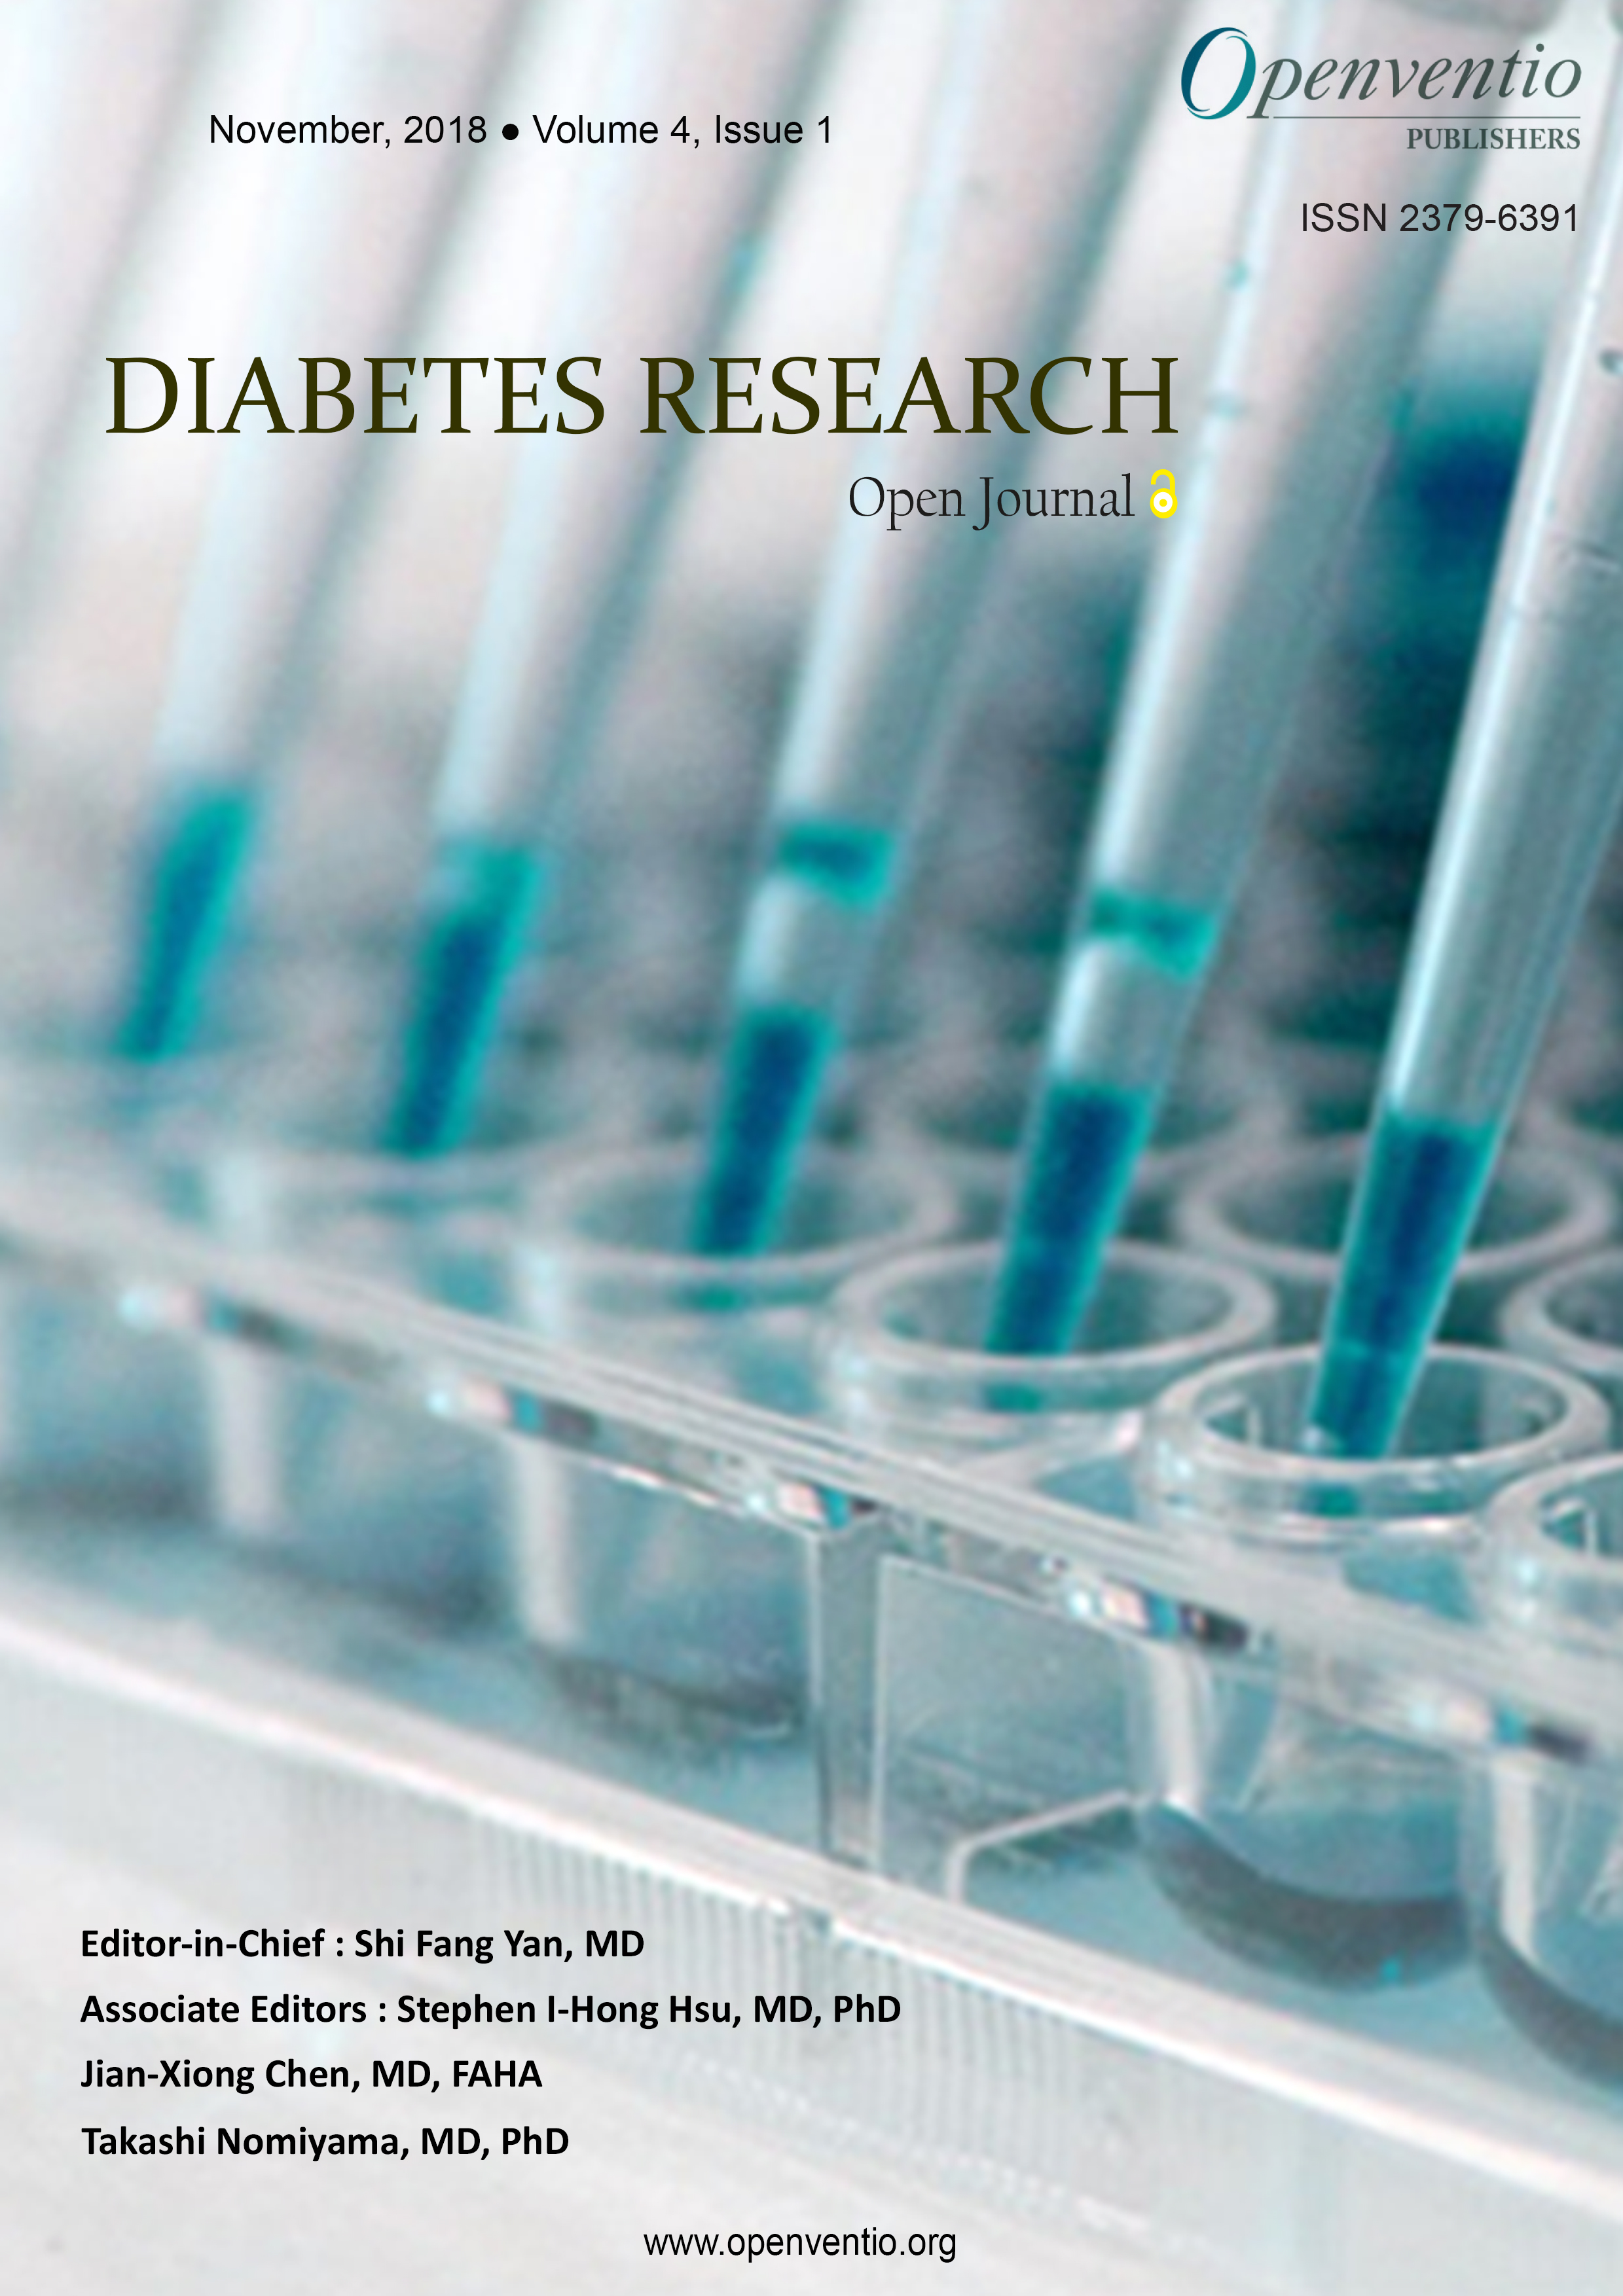 journal of diabetes research impact factor 2017